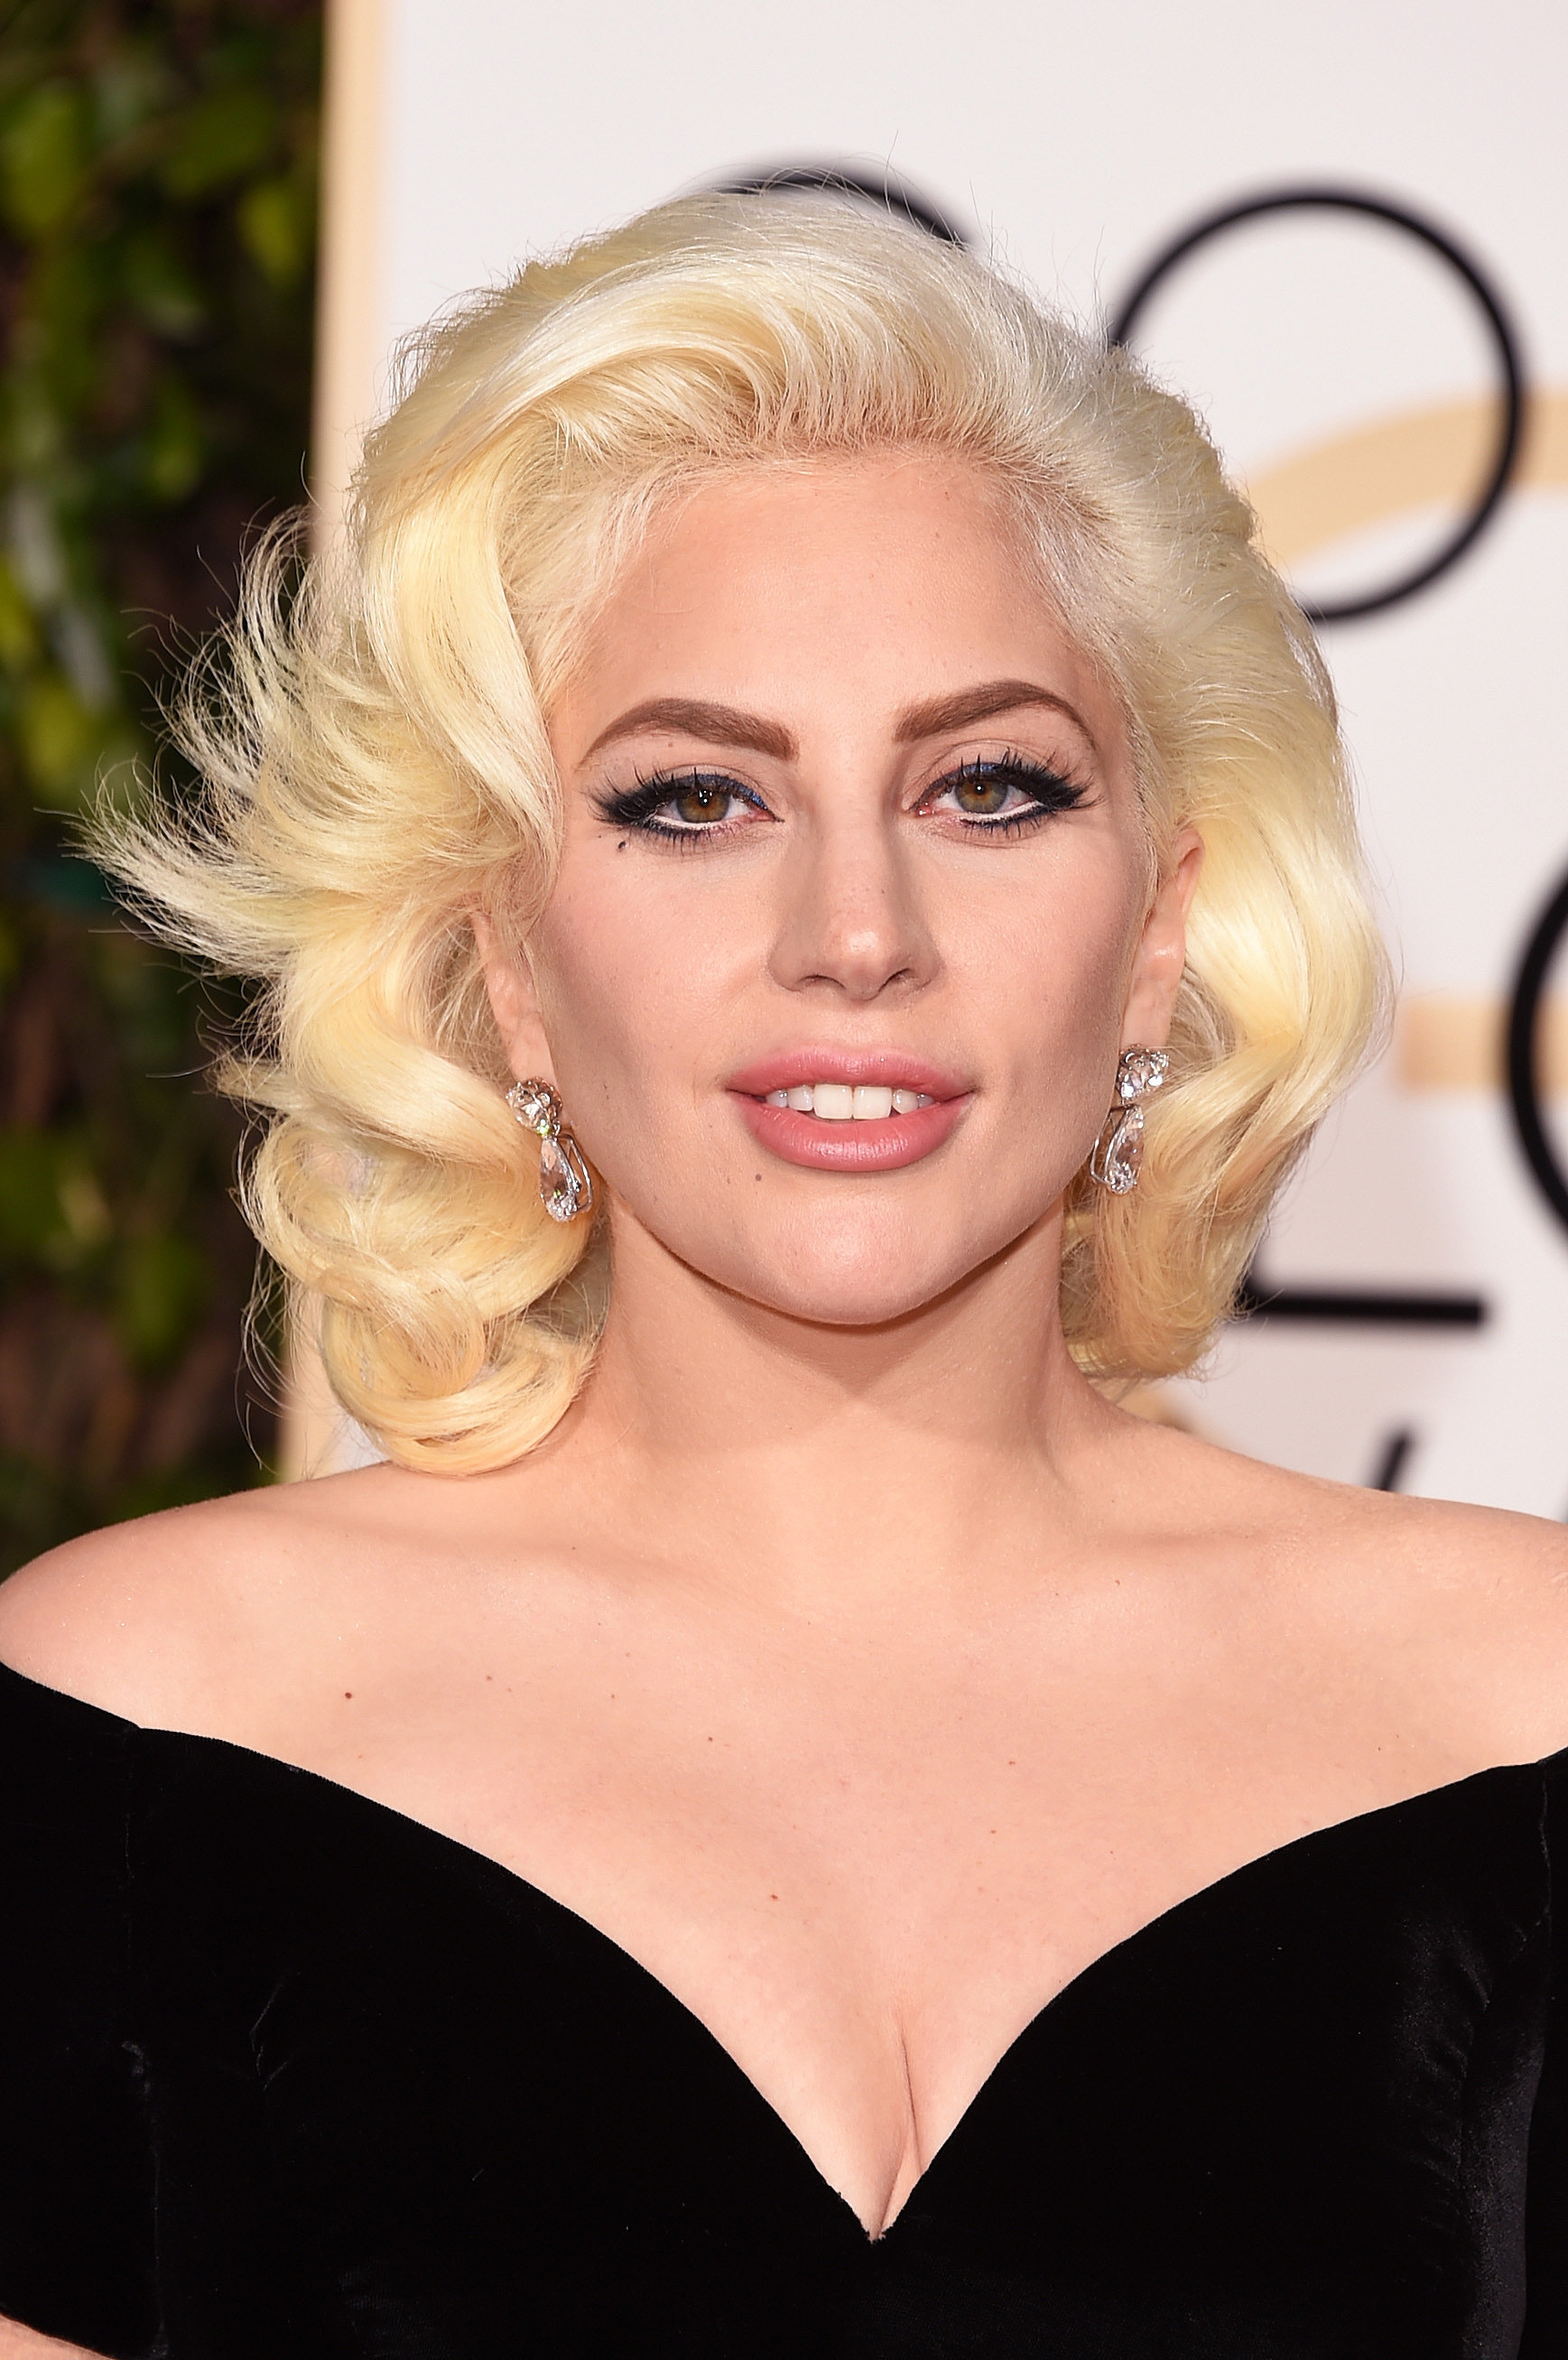 Lady Gaga | All the action from the casino floor: news, views and more